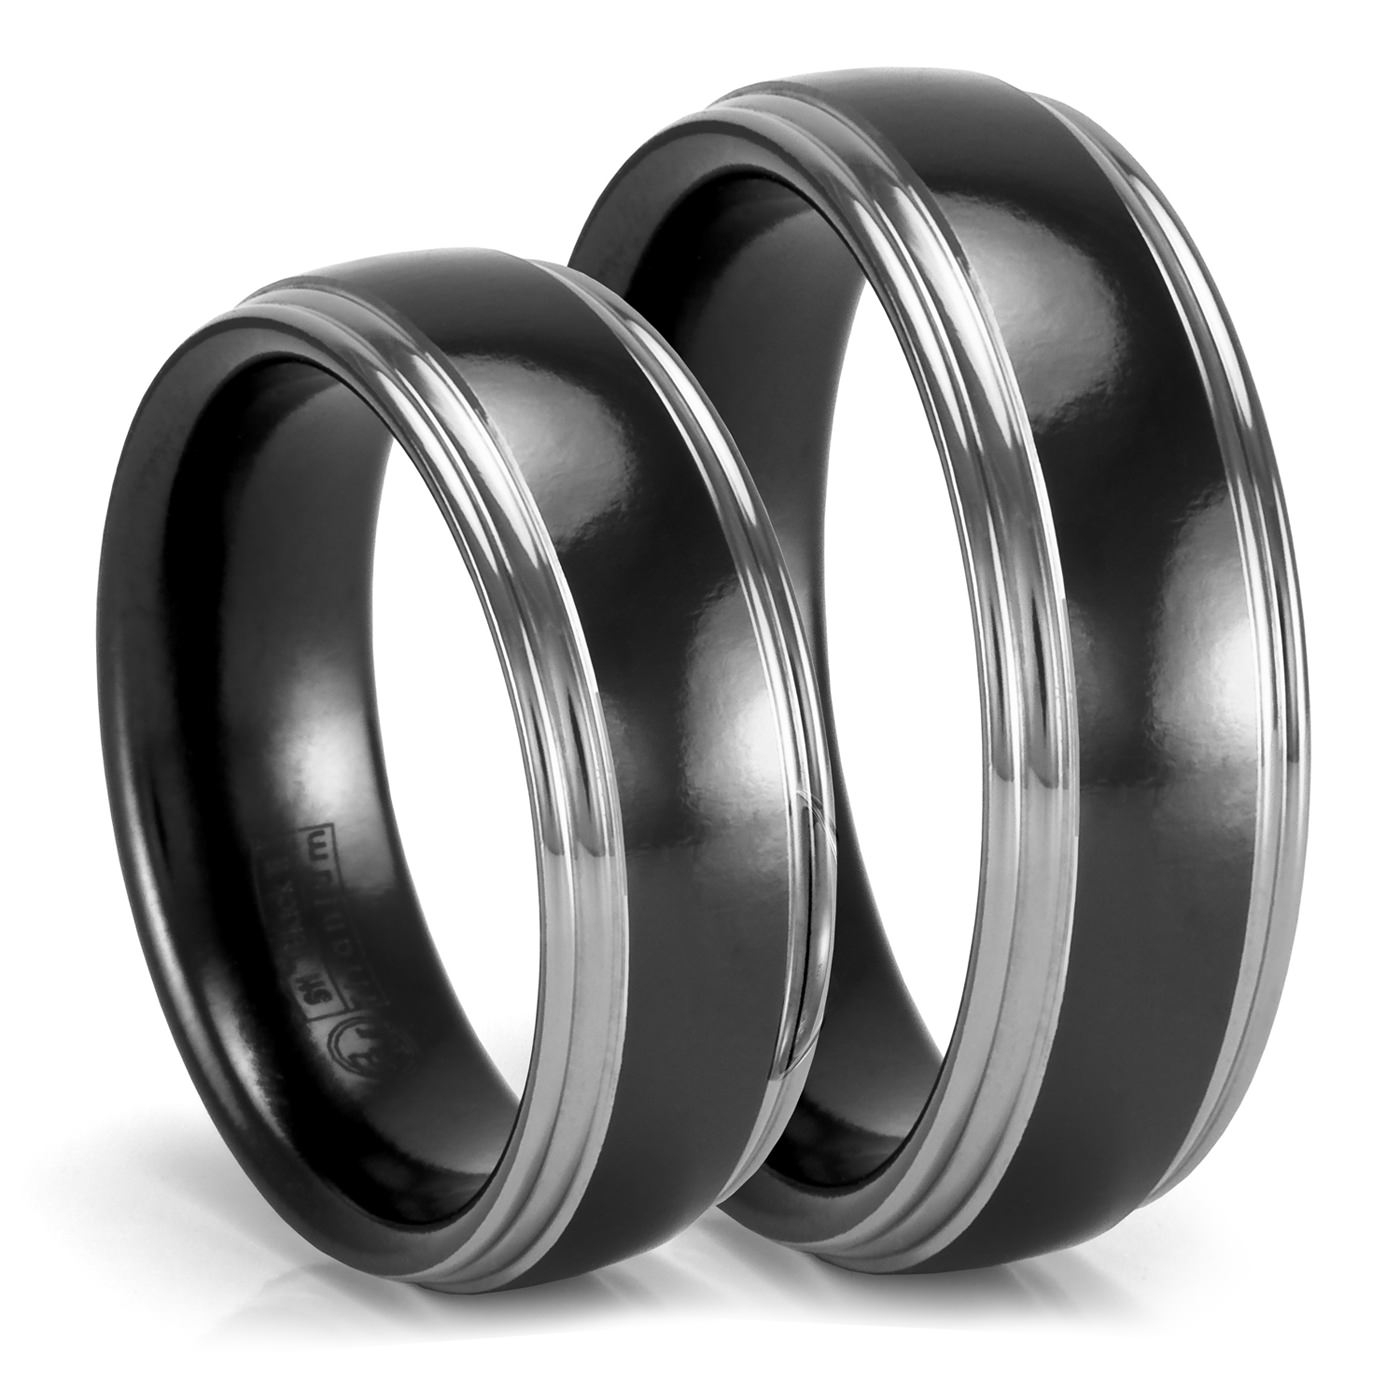 Matching Grey & Black Zirconium Wedding Bands – Wedding Set Pertaining To Black Zirconium Wedding Bands (Gallery 3 of 15)